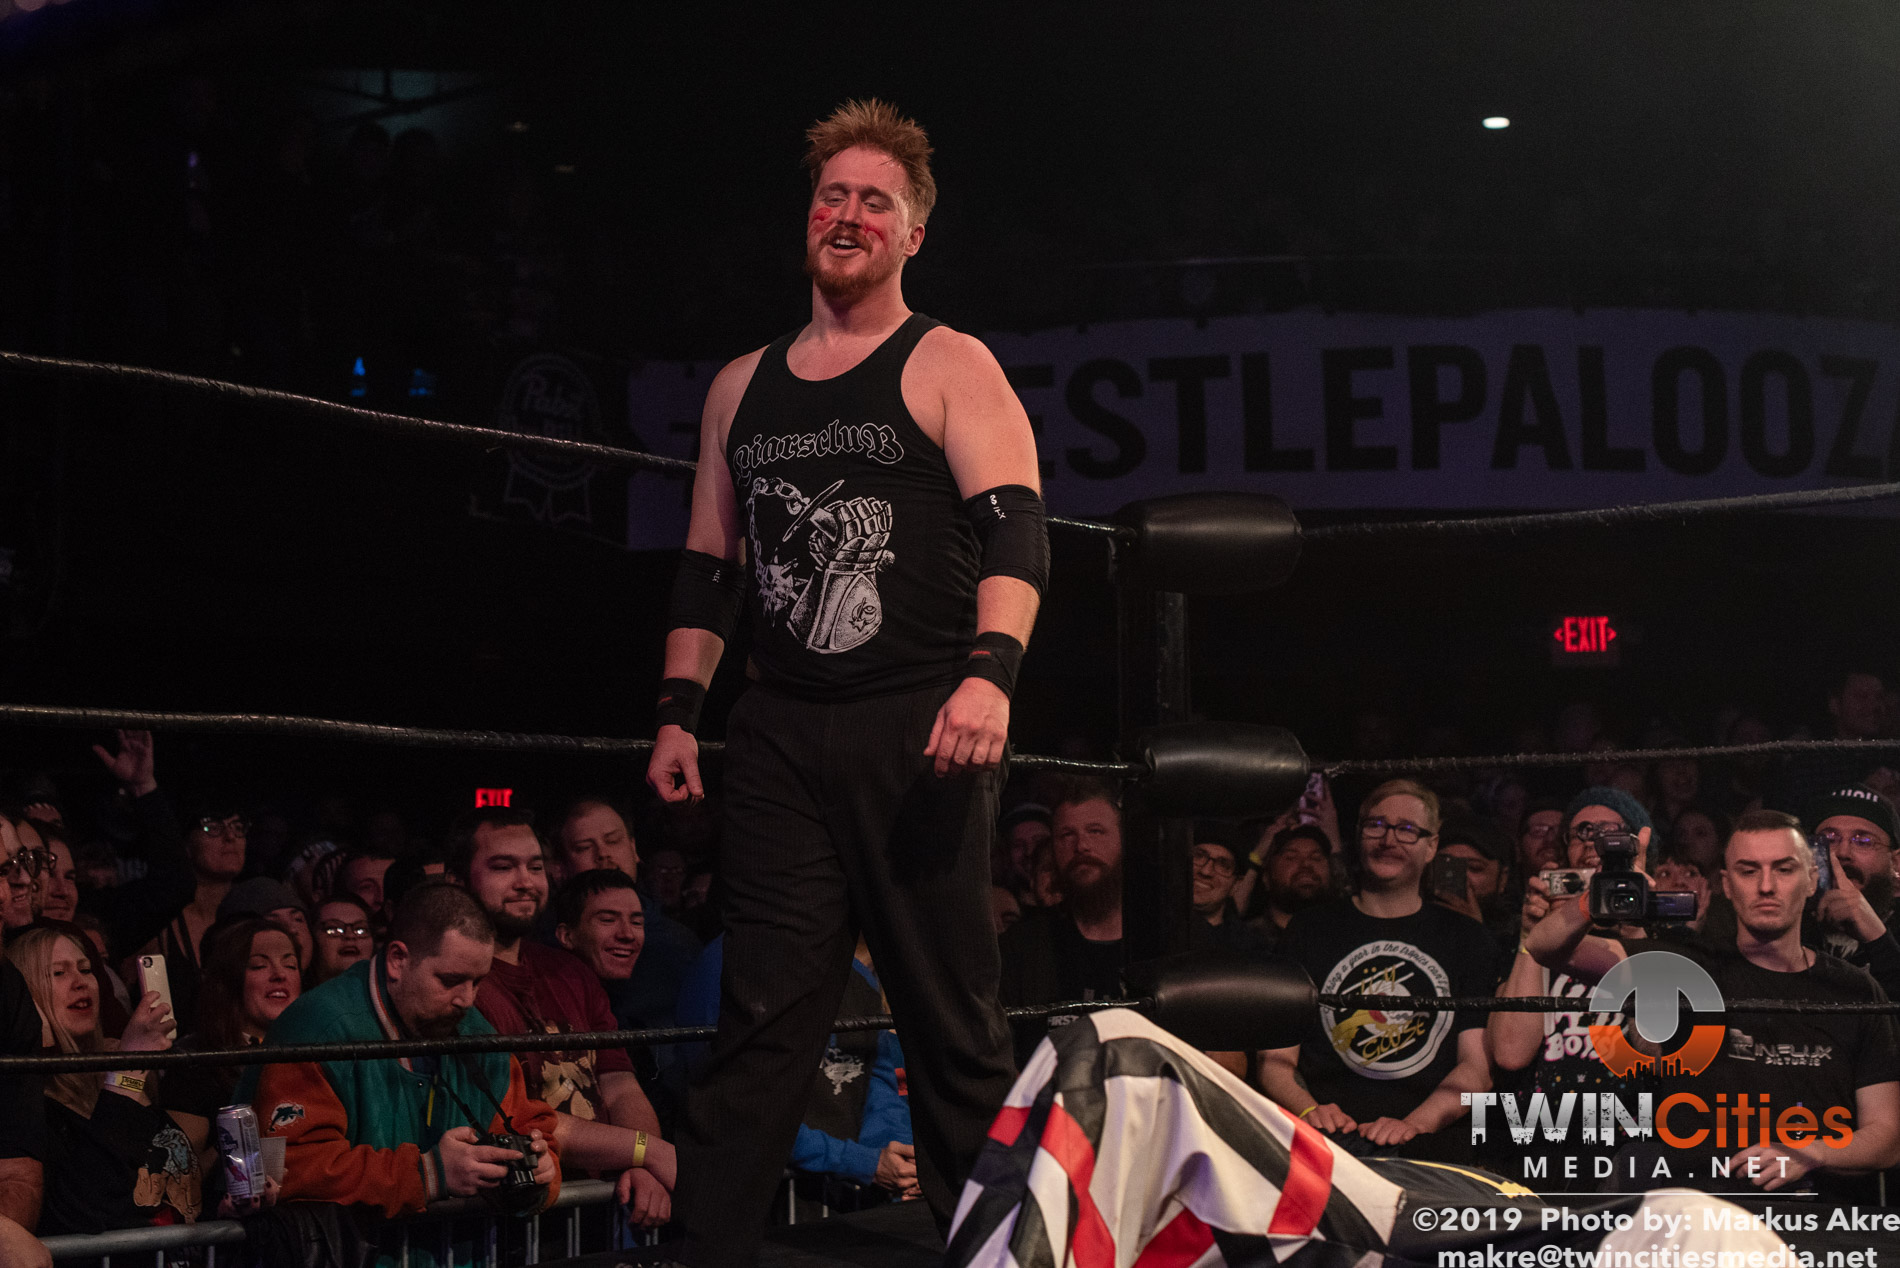 Wrestlepalooza - Match 4-8